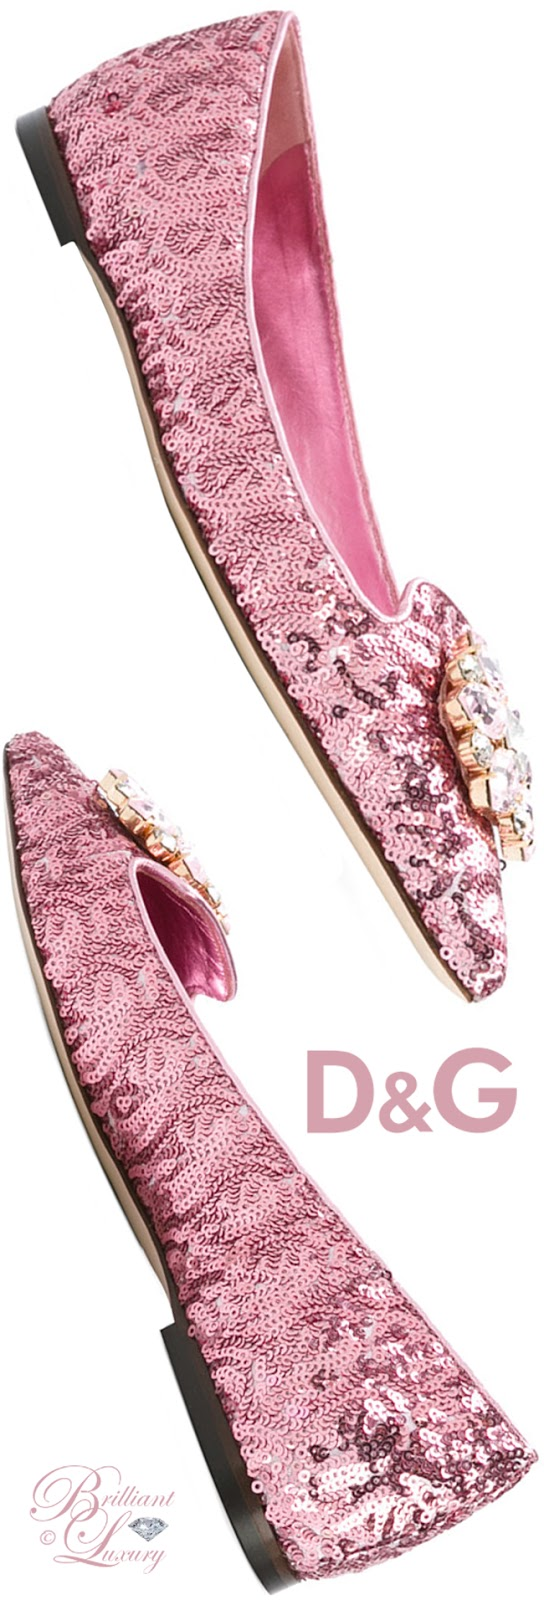 Brilliant Luxury ♦ Dolce & Gabbana Bellucci Slippers